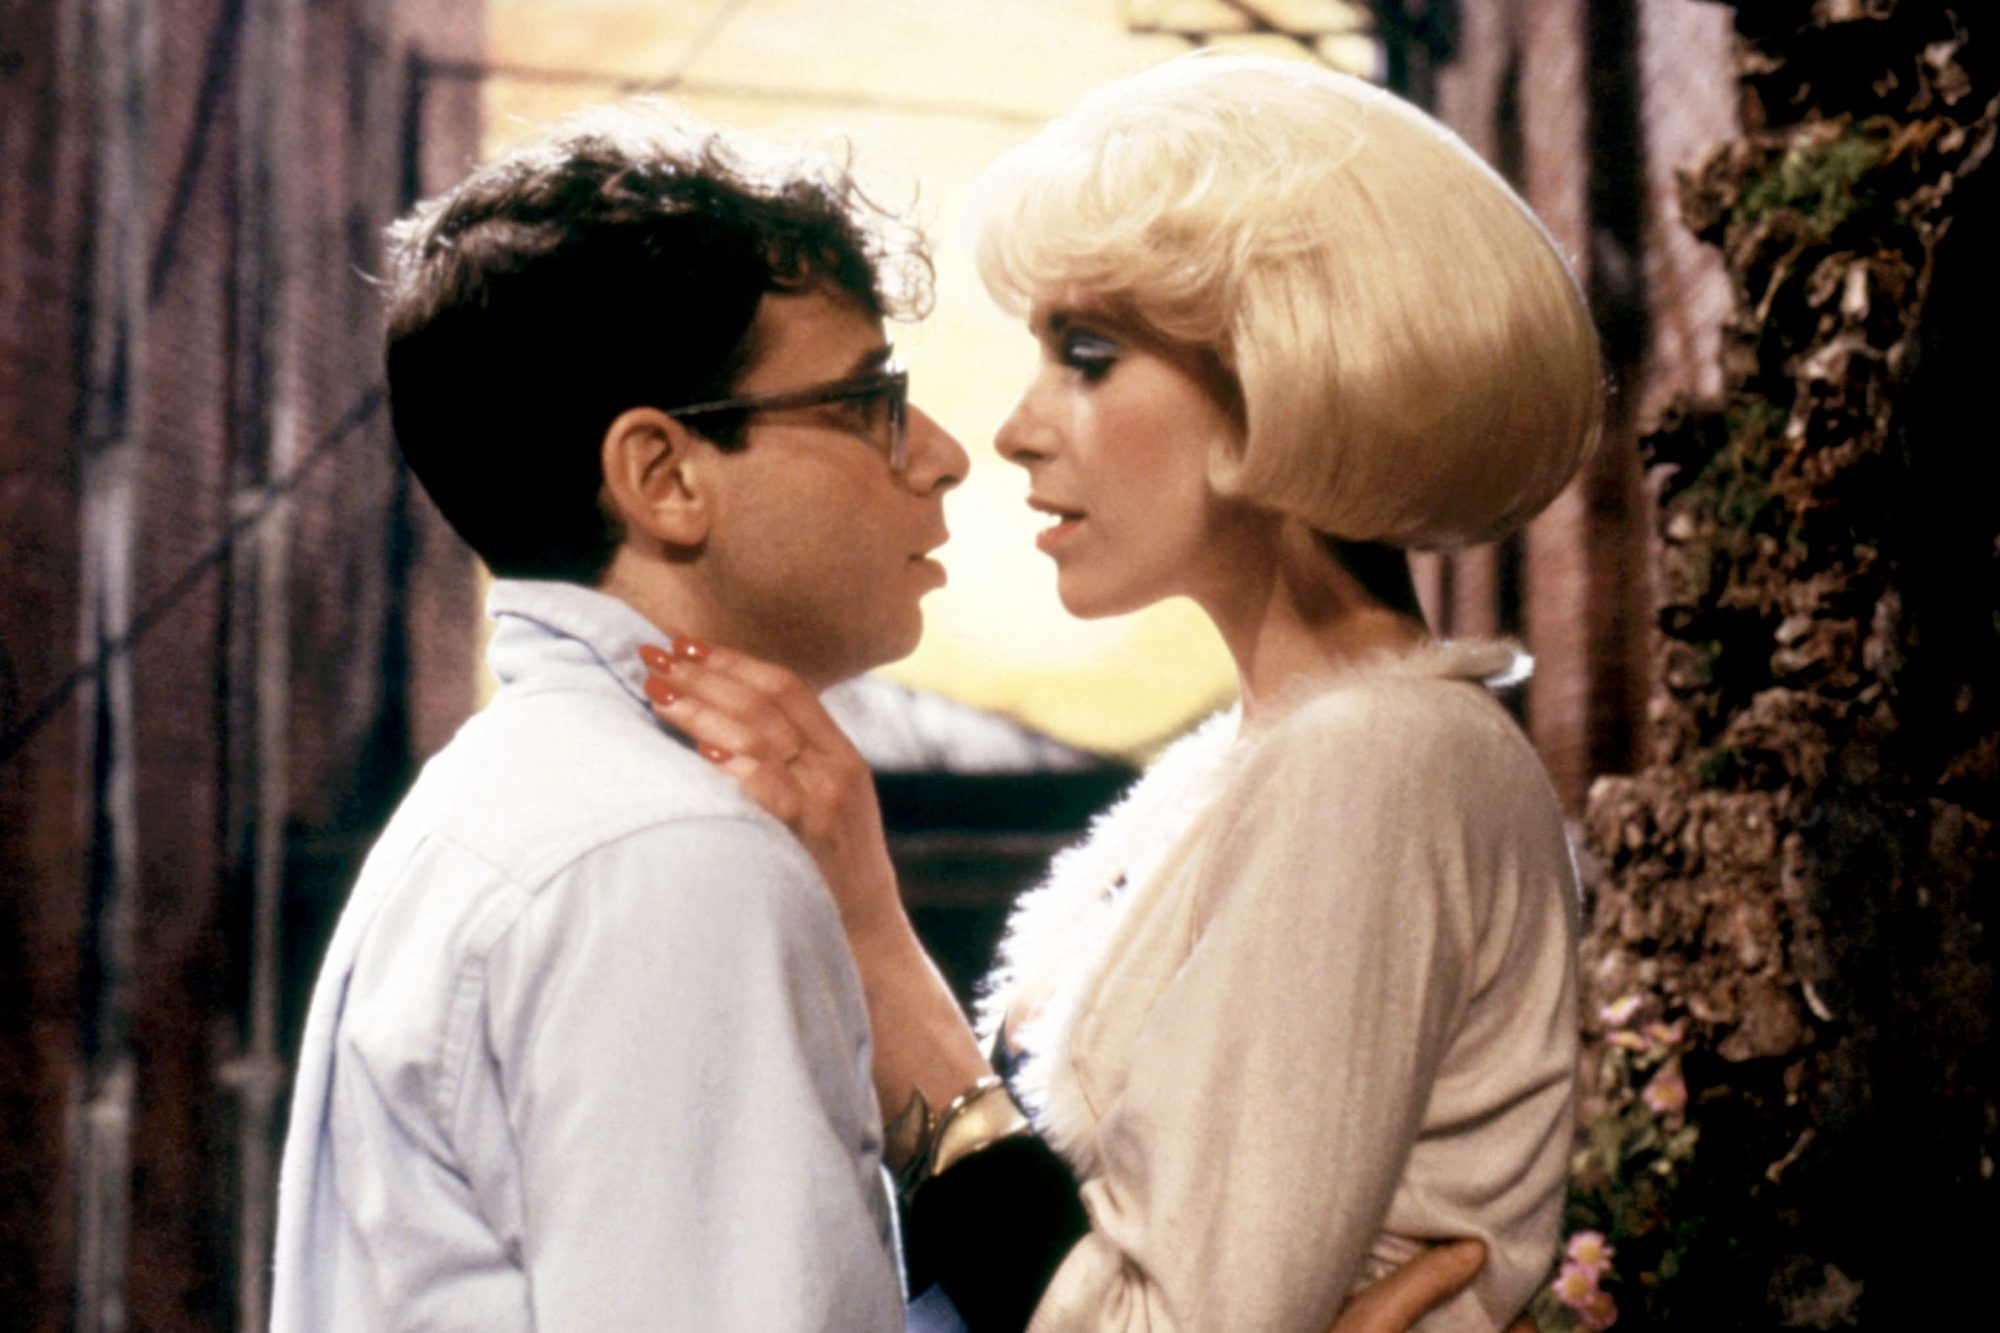 LITTLE SHOP OF HORRORS, Rick Moranis, Ellen Greene, 1986, (c)Warner Bros./courtesy Everett Collectio